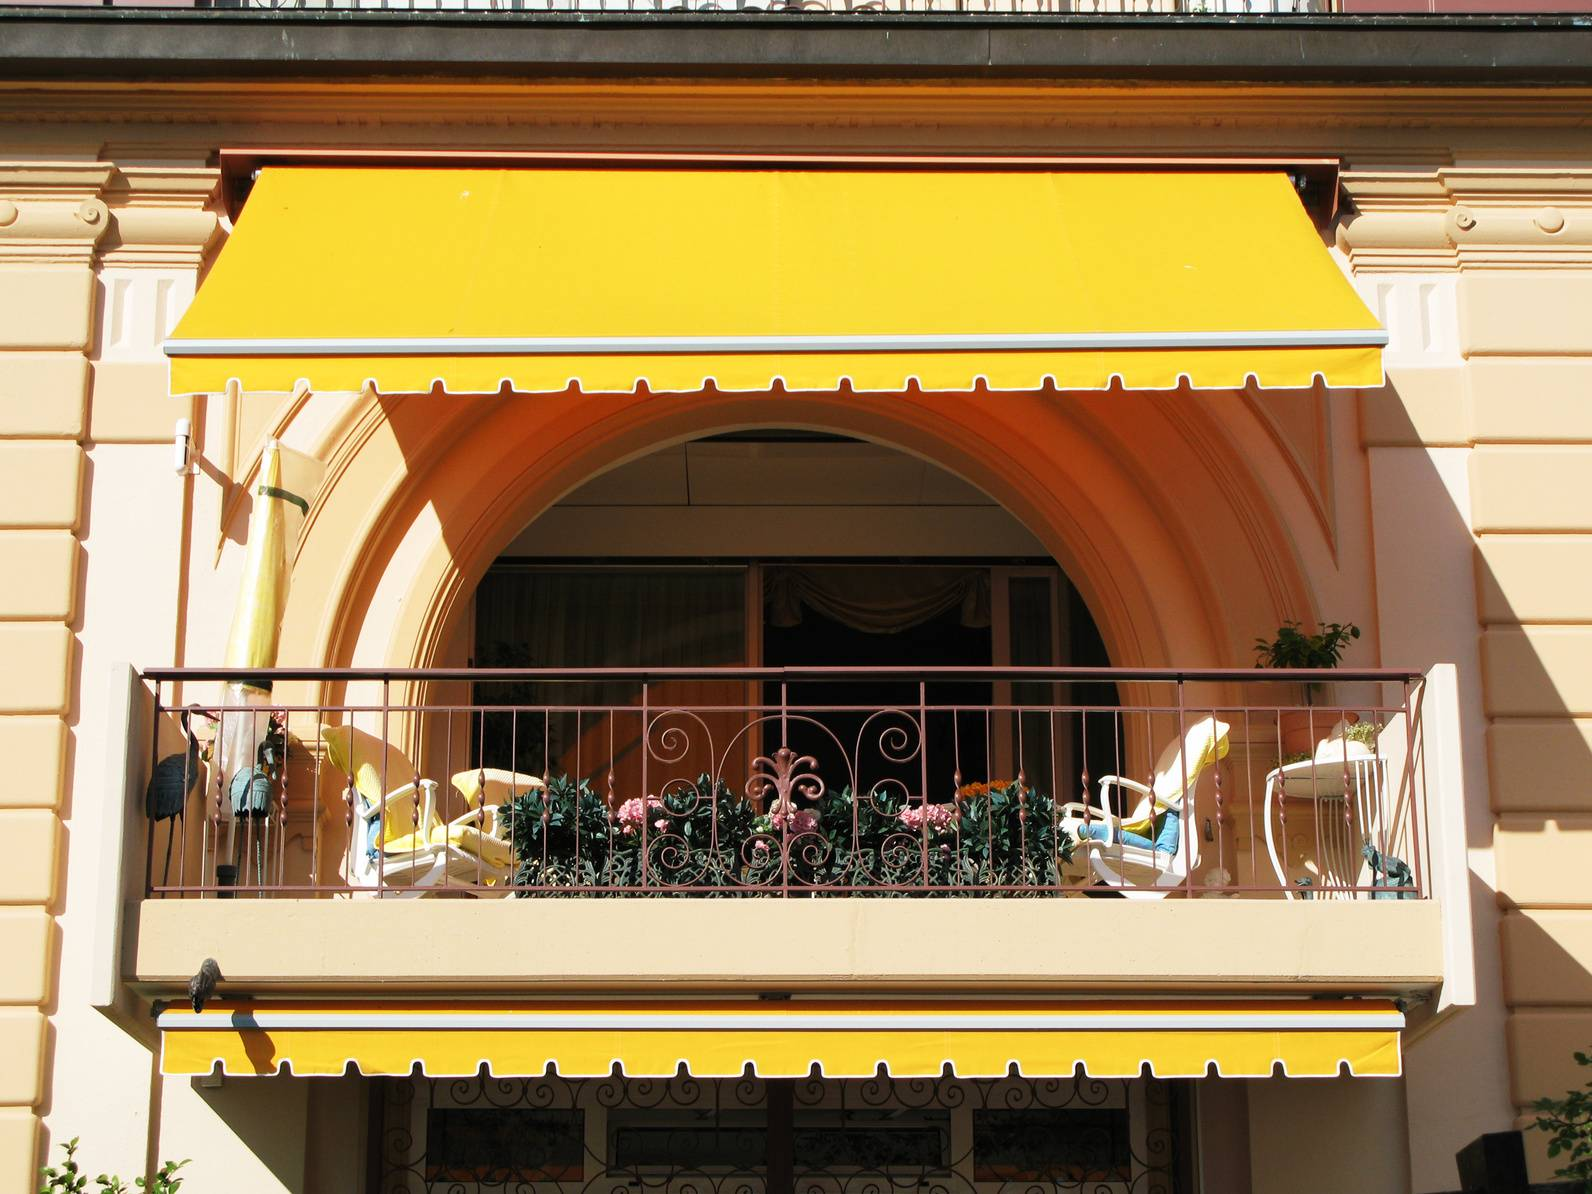 Balcony of luxury hotel with yellow canopy blinds